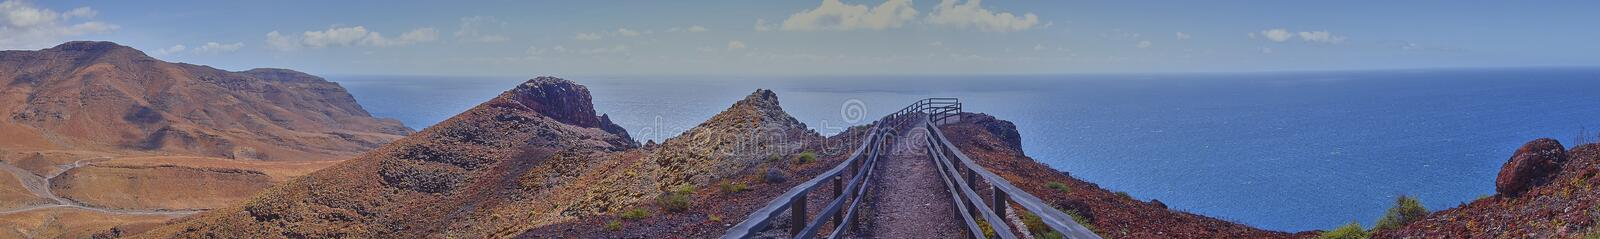 Scenic landscape panorama on the island of fuerteventura in the atlantic ocean royalty free stock images